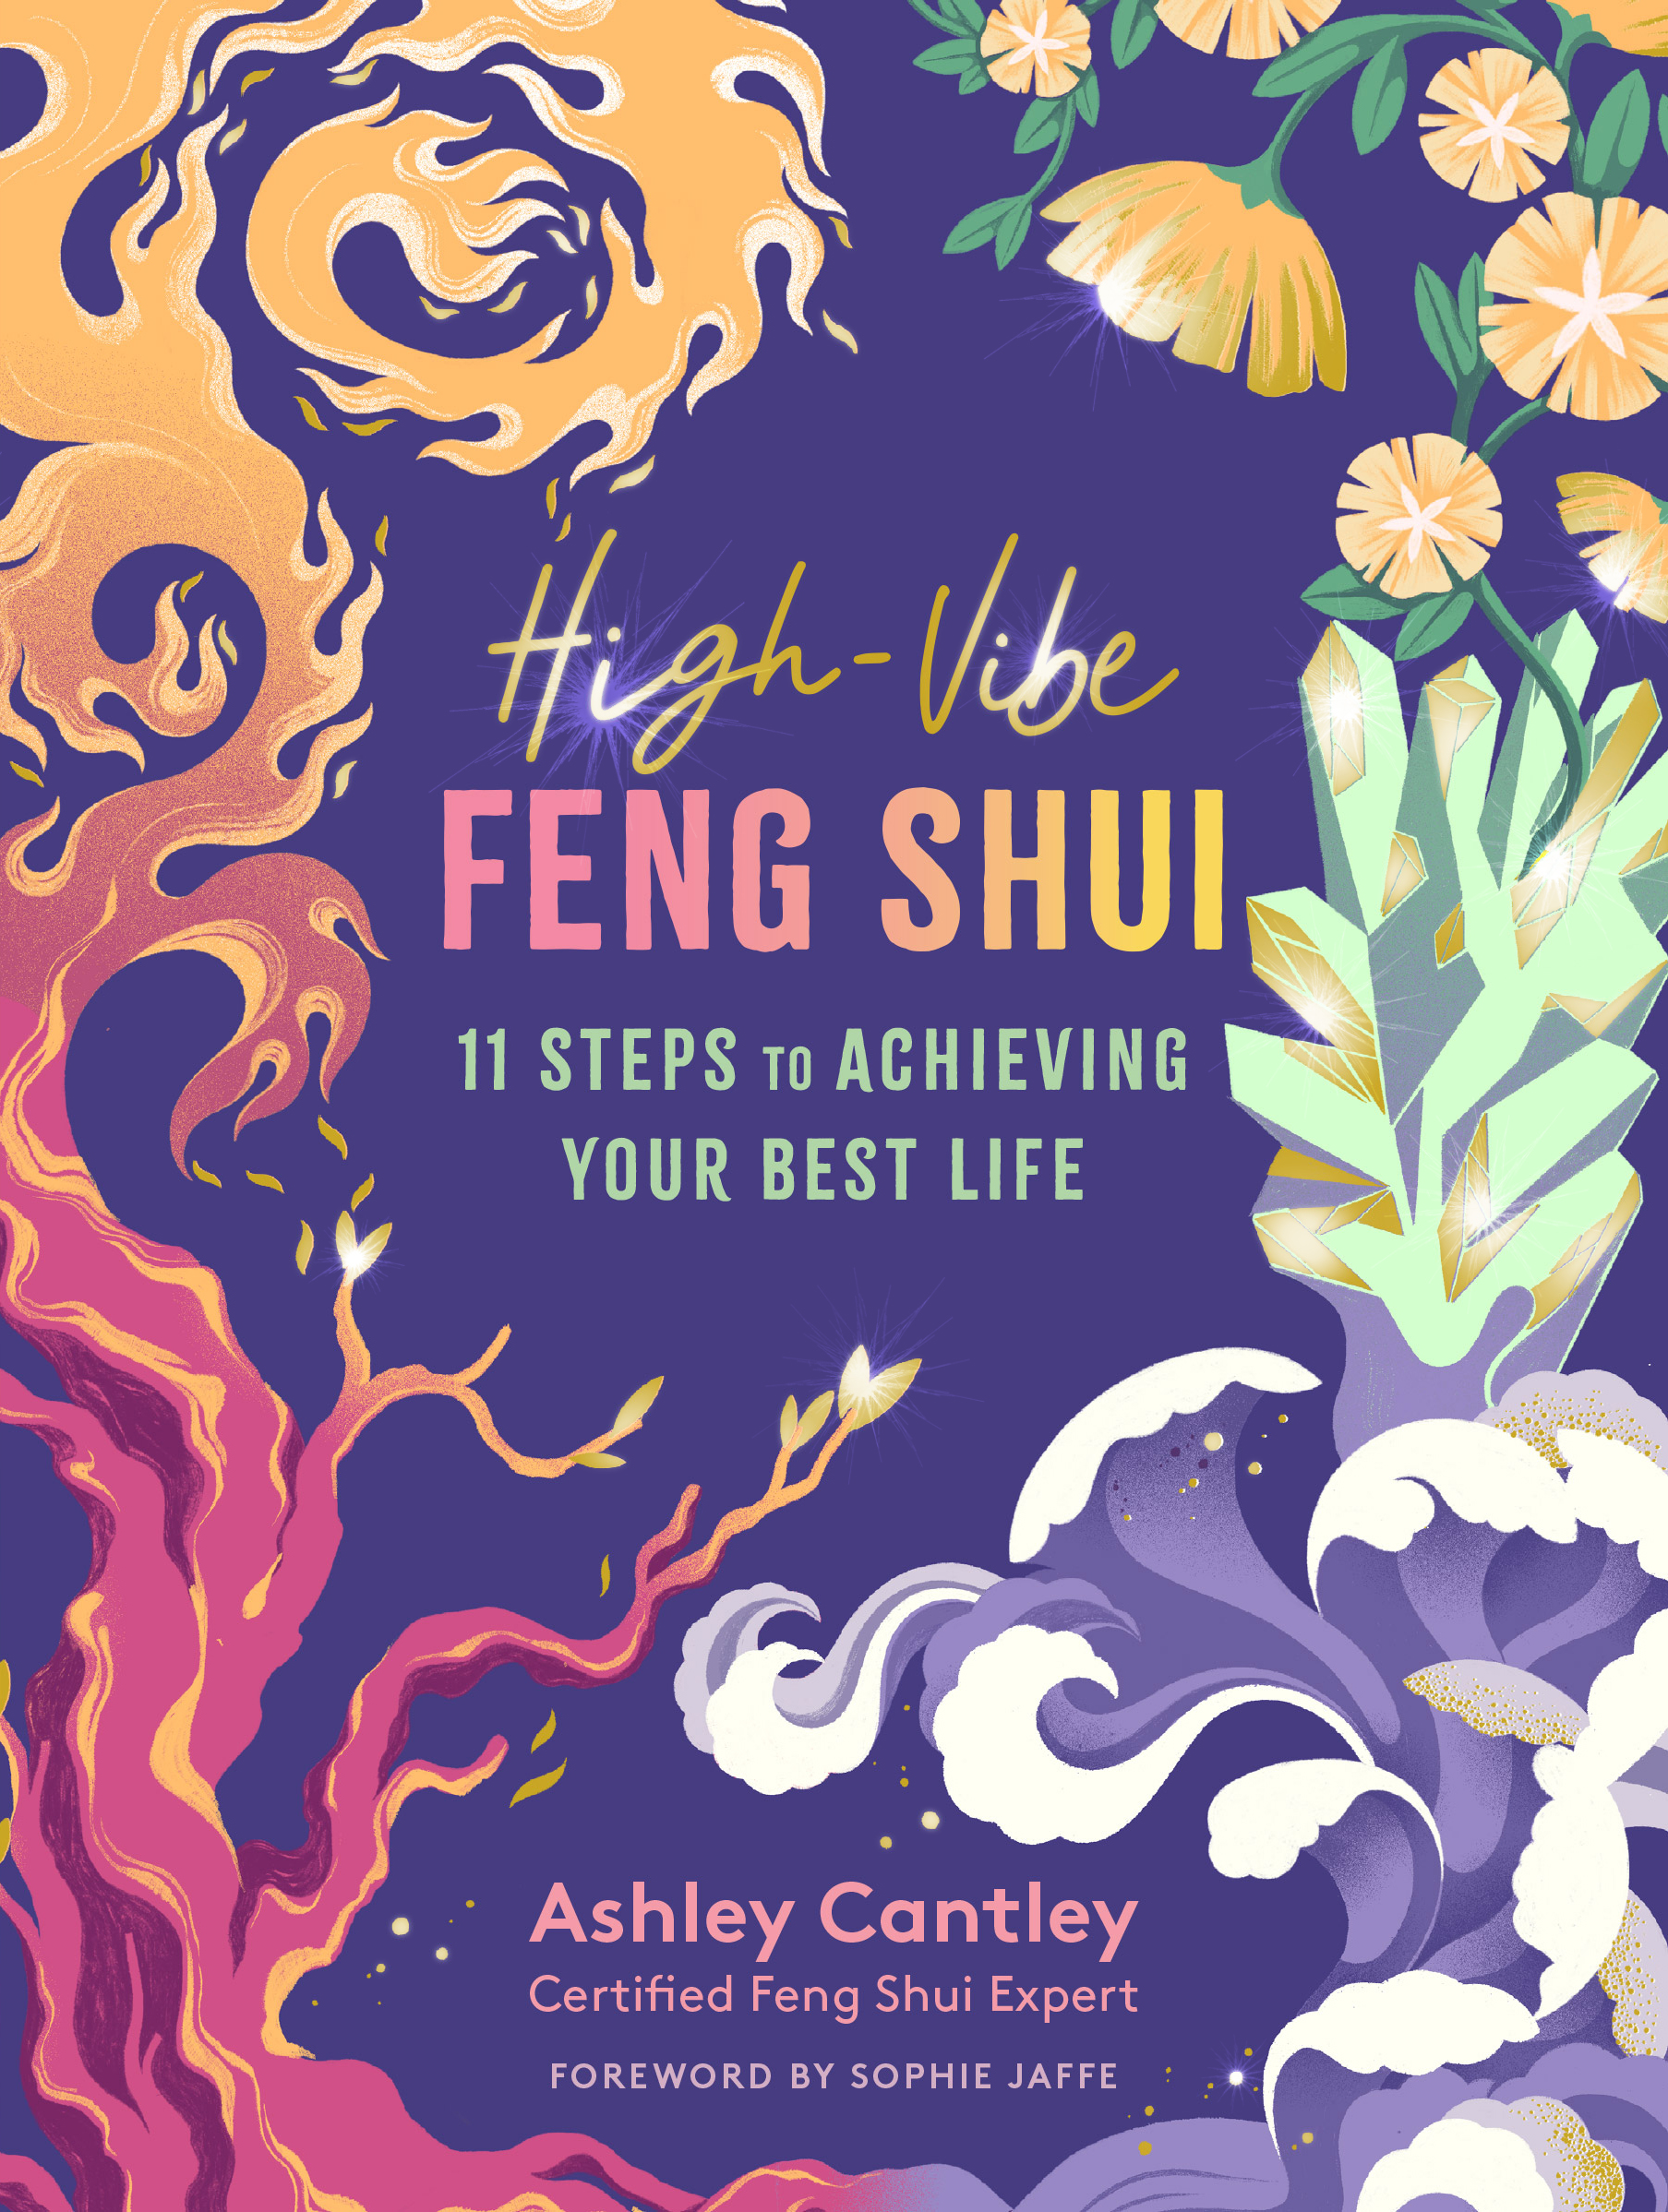 High-Vibe Feng Shui 11 Steps to Achieving Your Best Life - Ashley Cantley